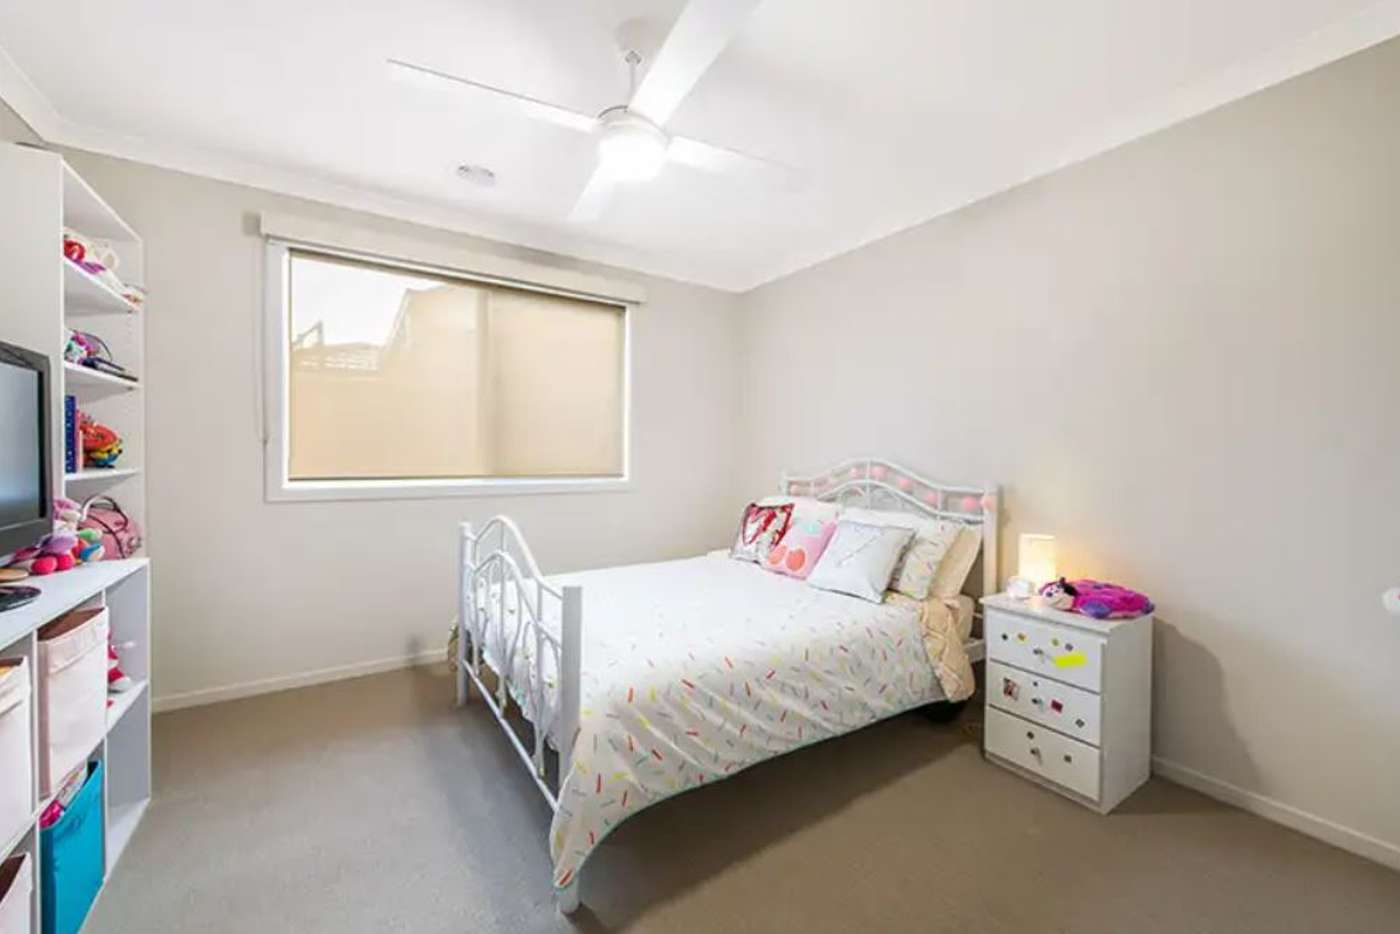 Sixth view of Homely house listing, 66 Ardent Crescent, Cranbourne East VIC 3977